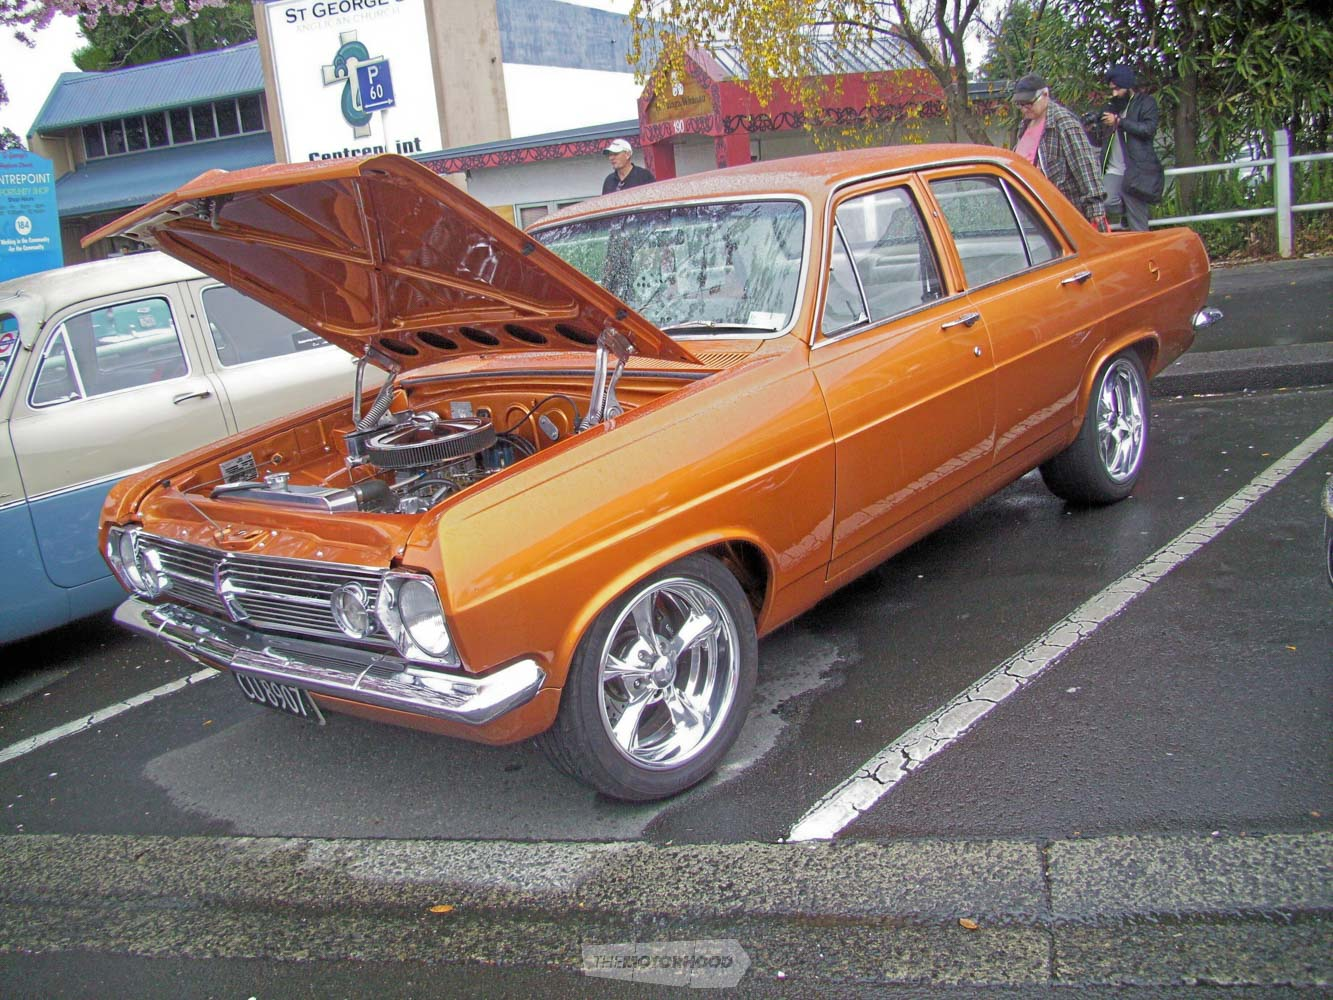 Joe Ryder  from Bethlehem had his golden 1966 HR Holden on display  but I had no other info on it.jpg